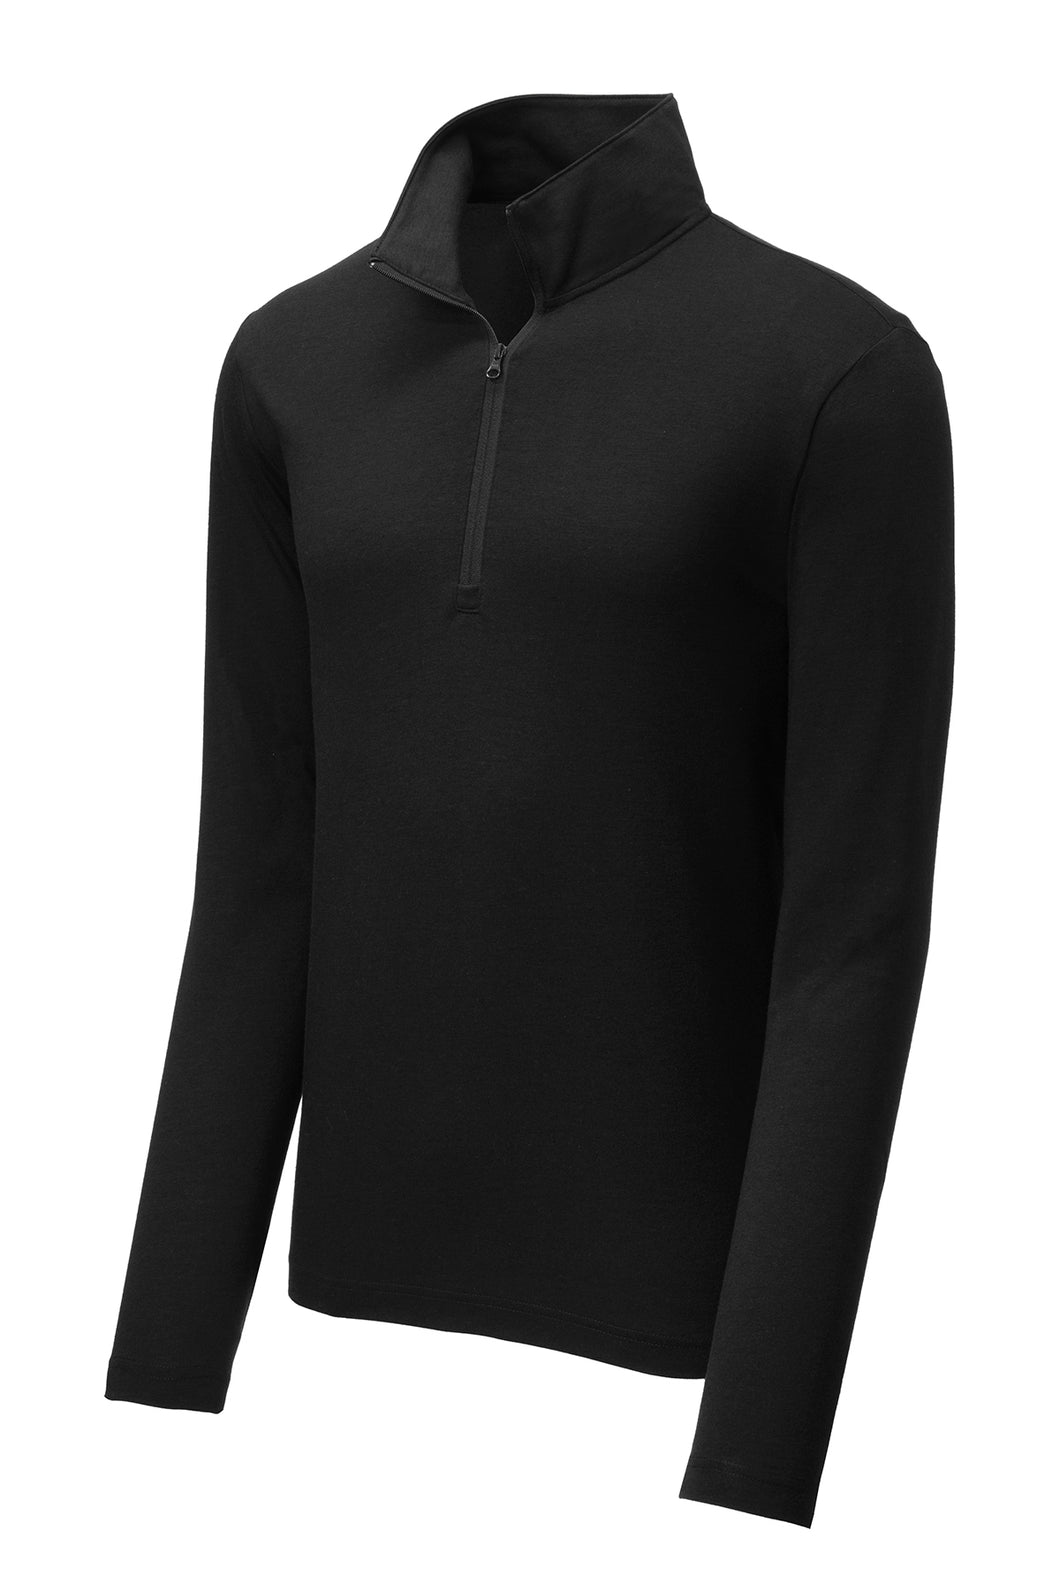 Fusion Performance Quarter-Zip - Black